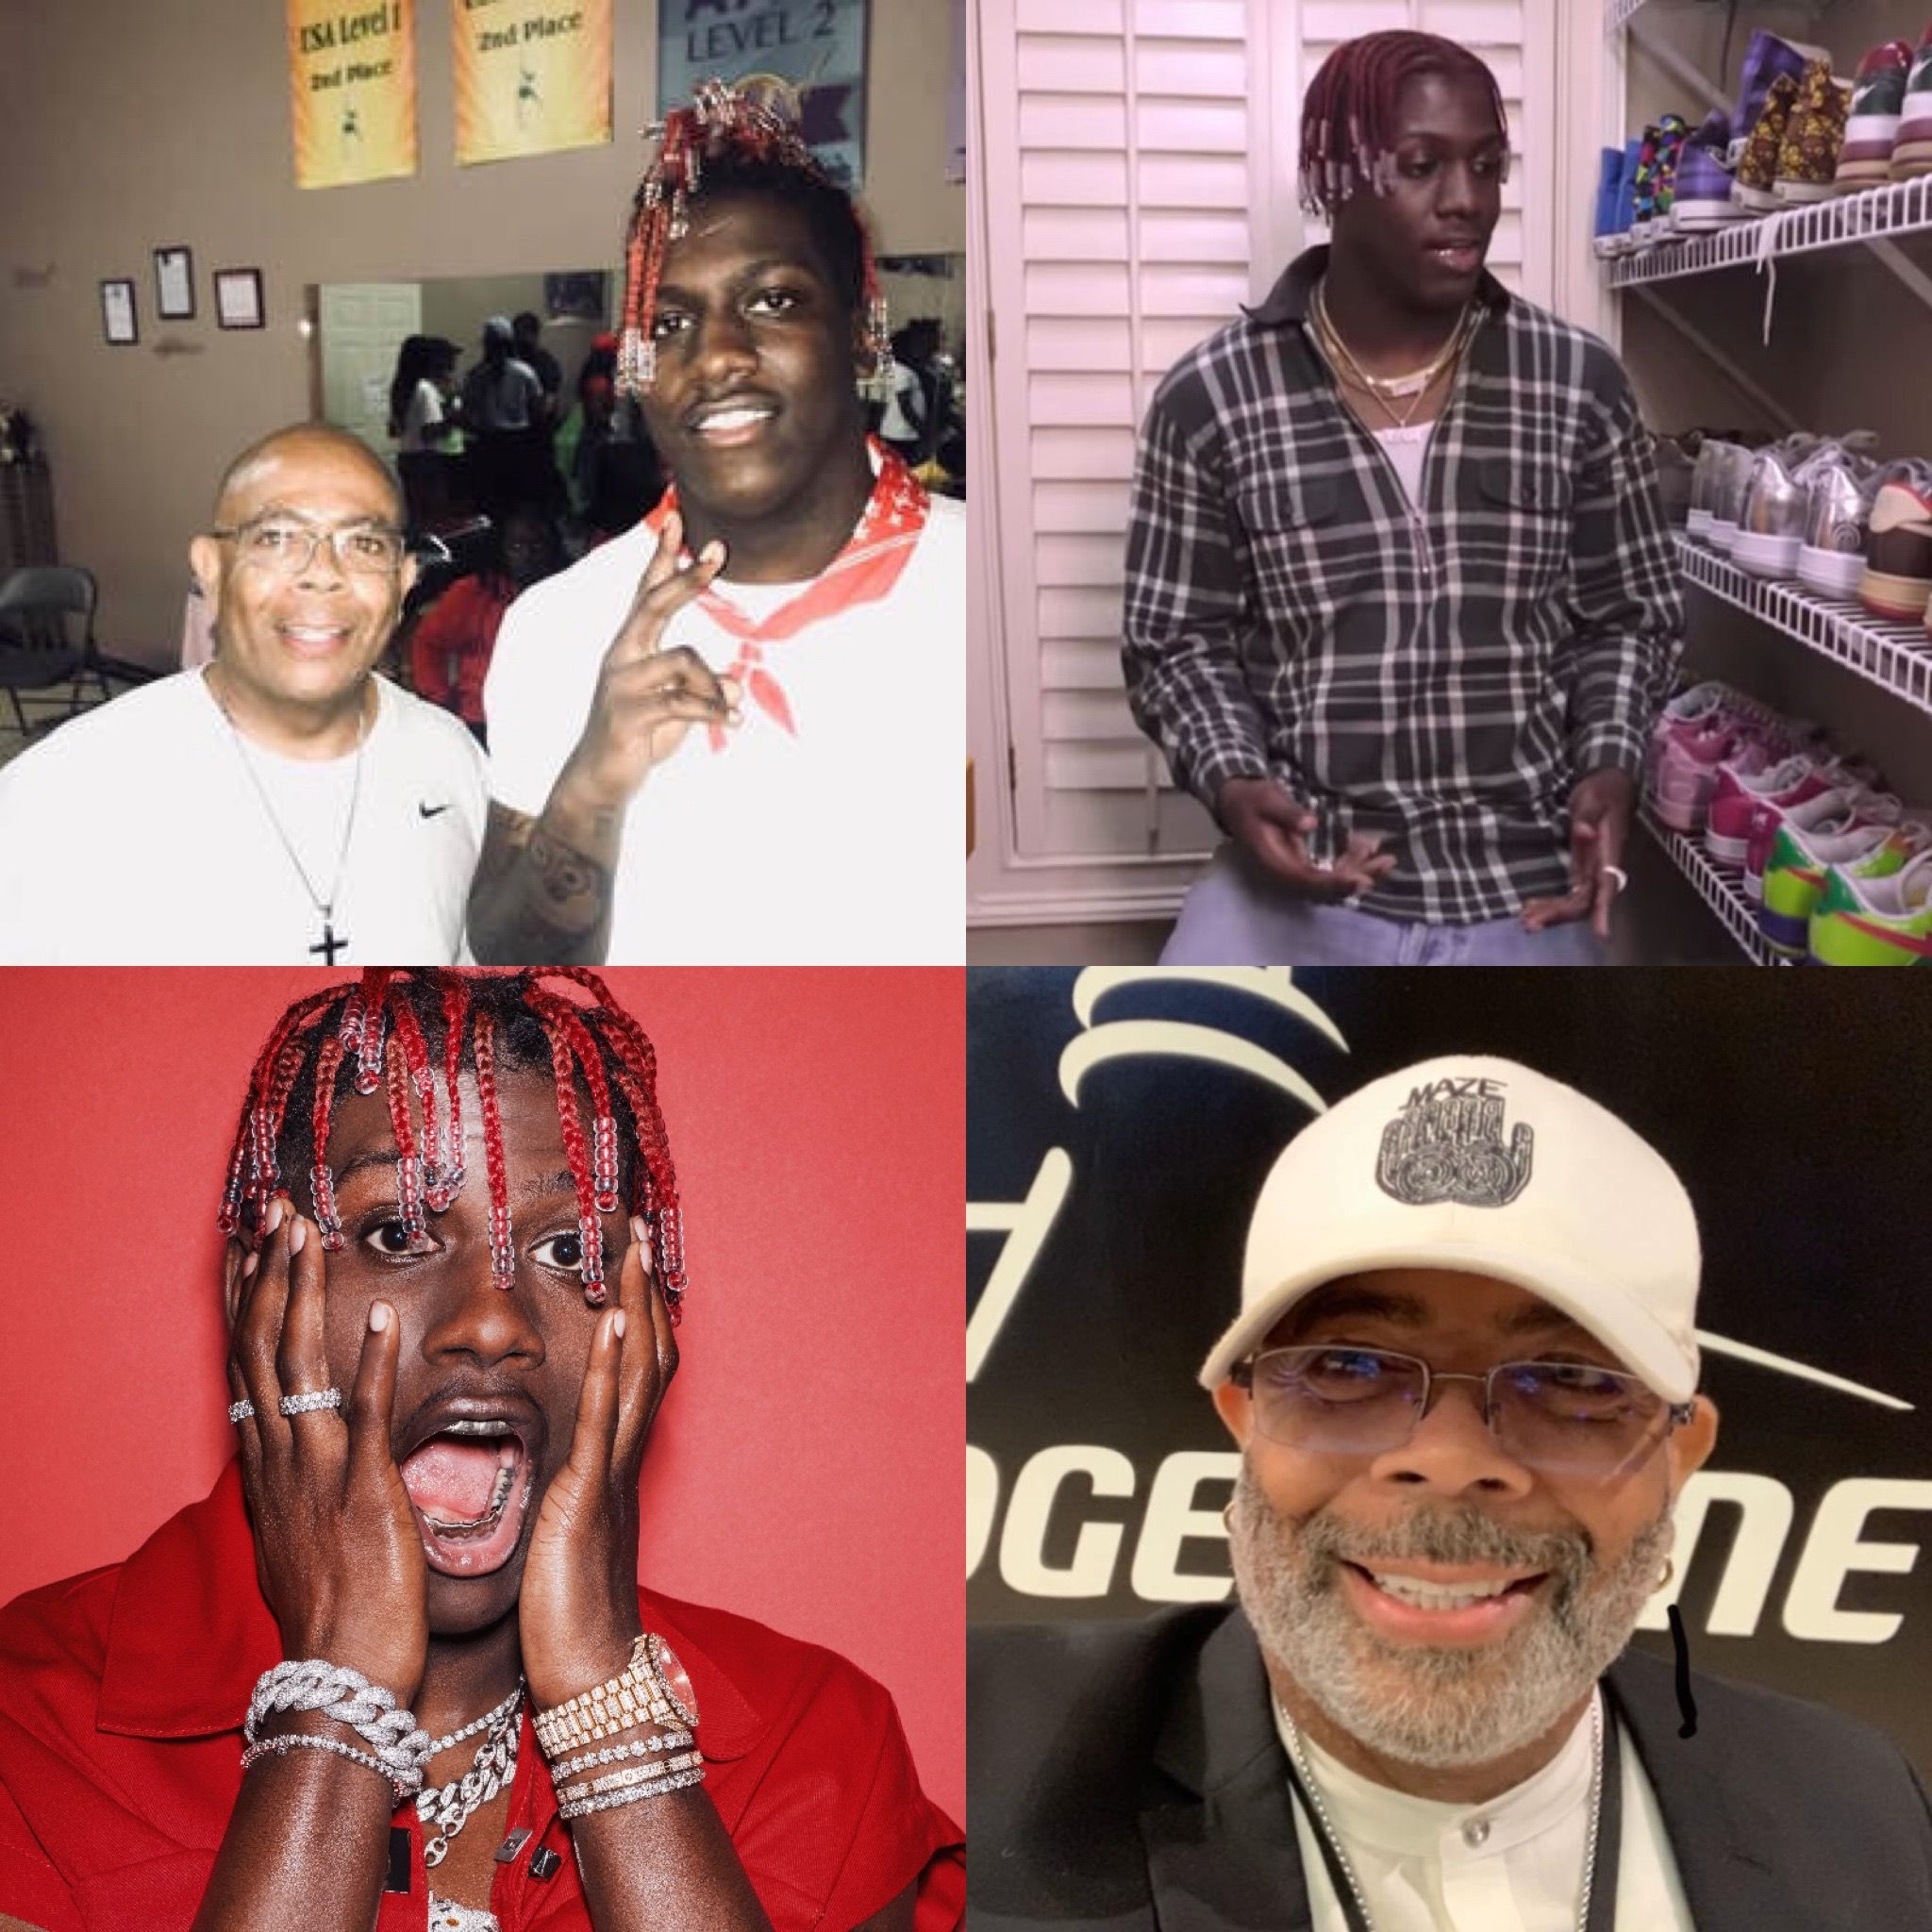 #LilYachty #Rapper #Songwriter #Entrepreneur #Yachty is from #Mableton #Georgia. He moved from Atlanta to New York to launch his career. He is a rare, tennis shoe trader #ConnectingTheDots #WillisMusicGroup #GeorgeWillisJr #Asian #CoachK  #YoungJeezy #TI #TheBaby #HipHop #Love